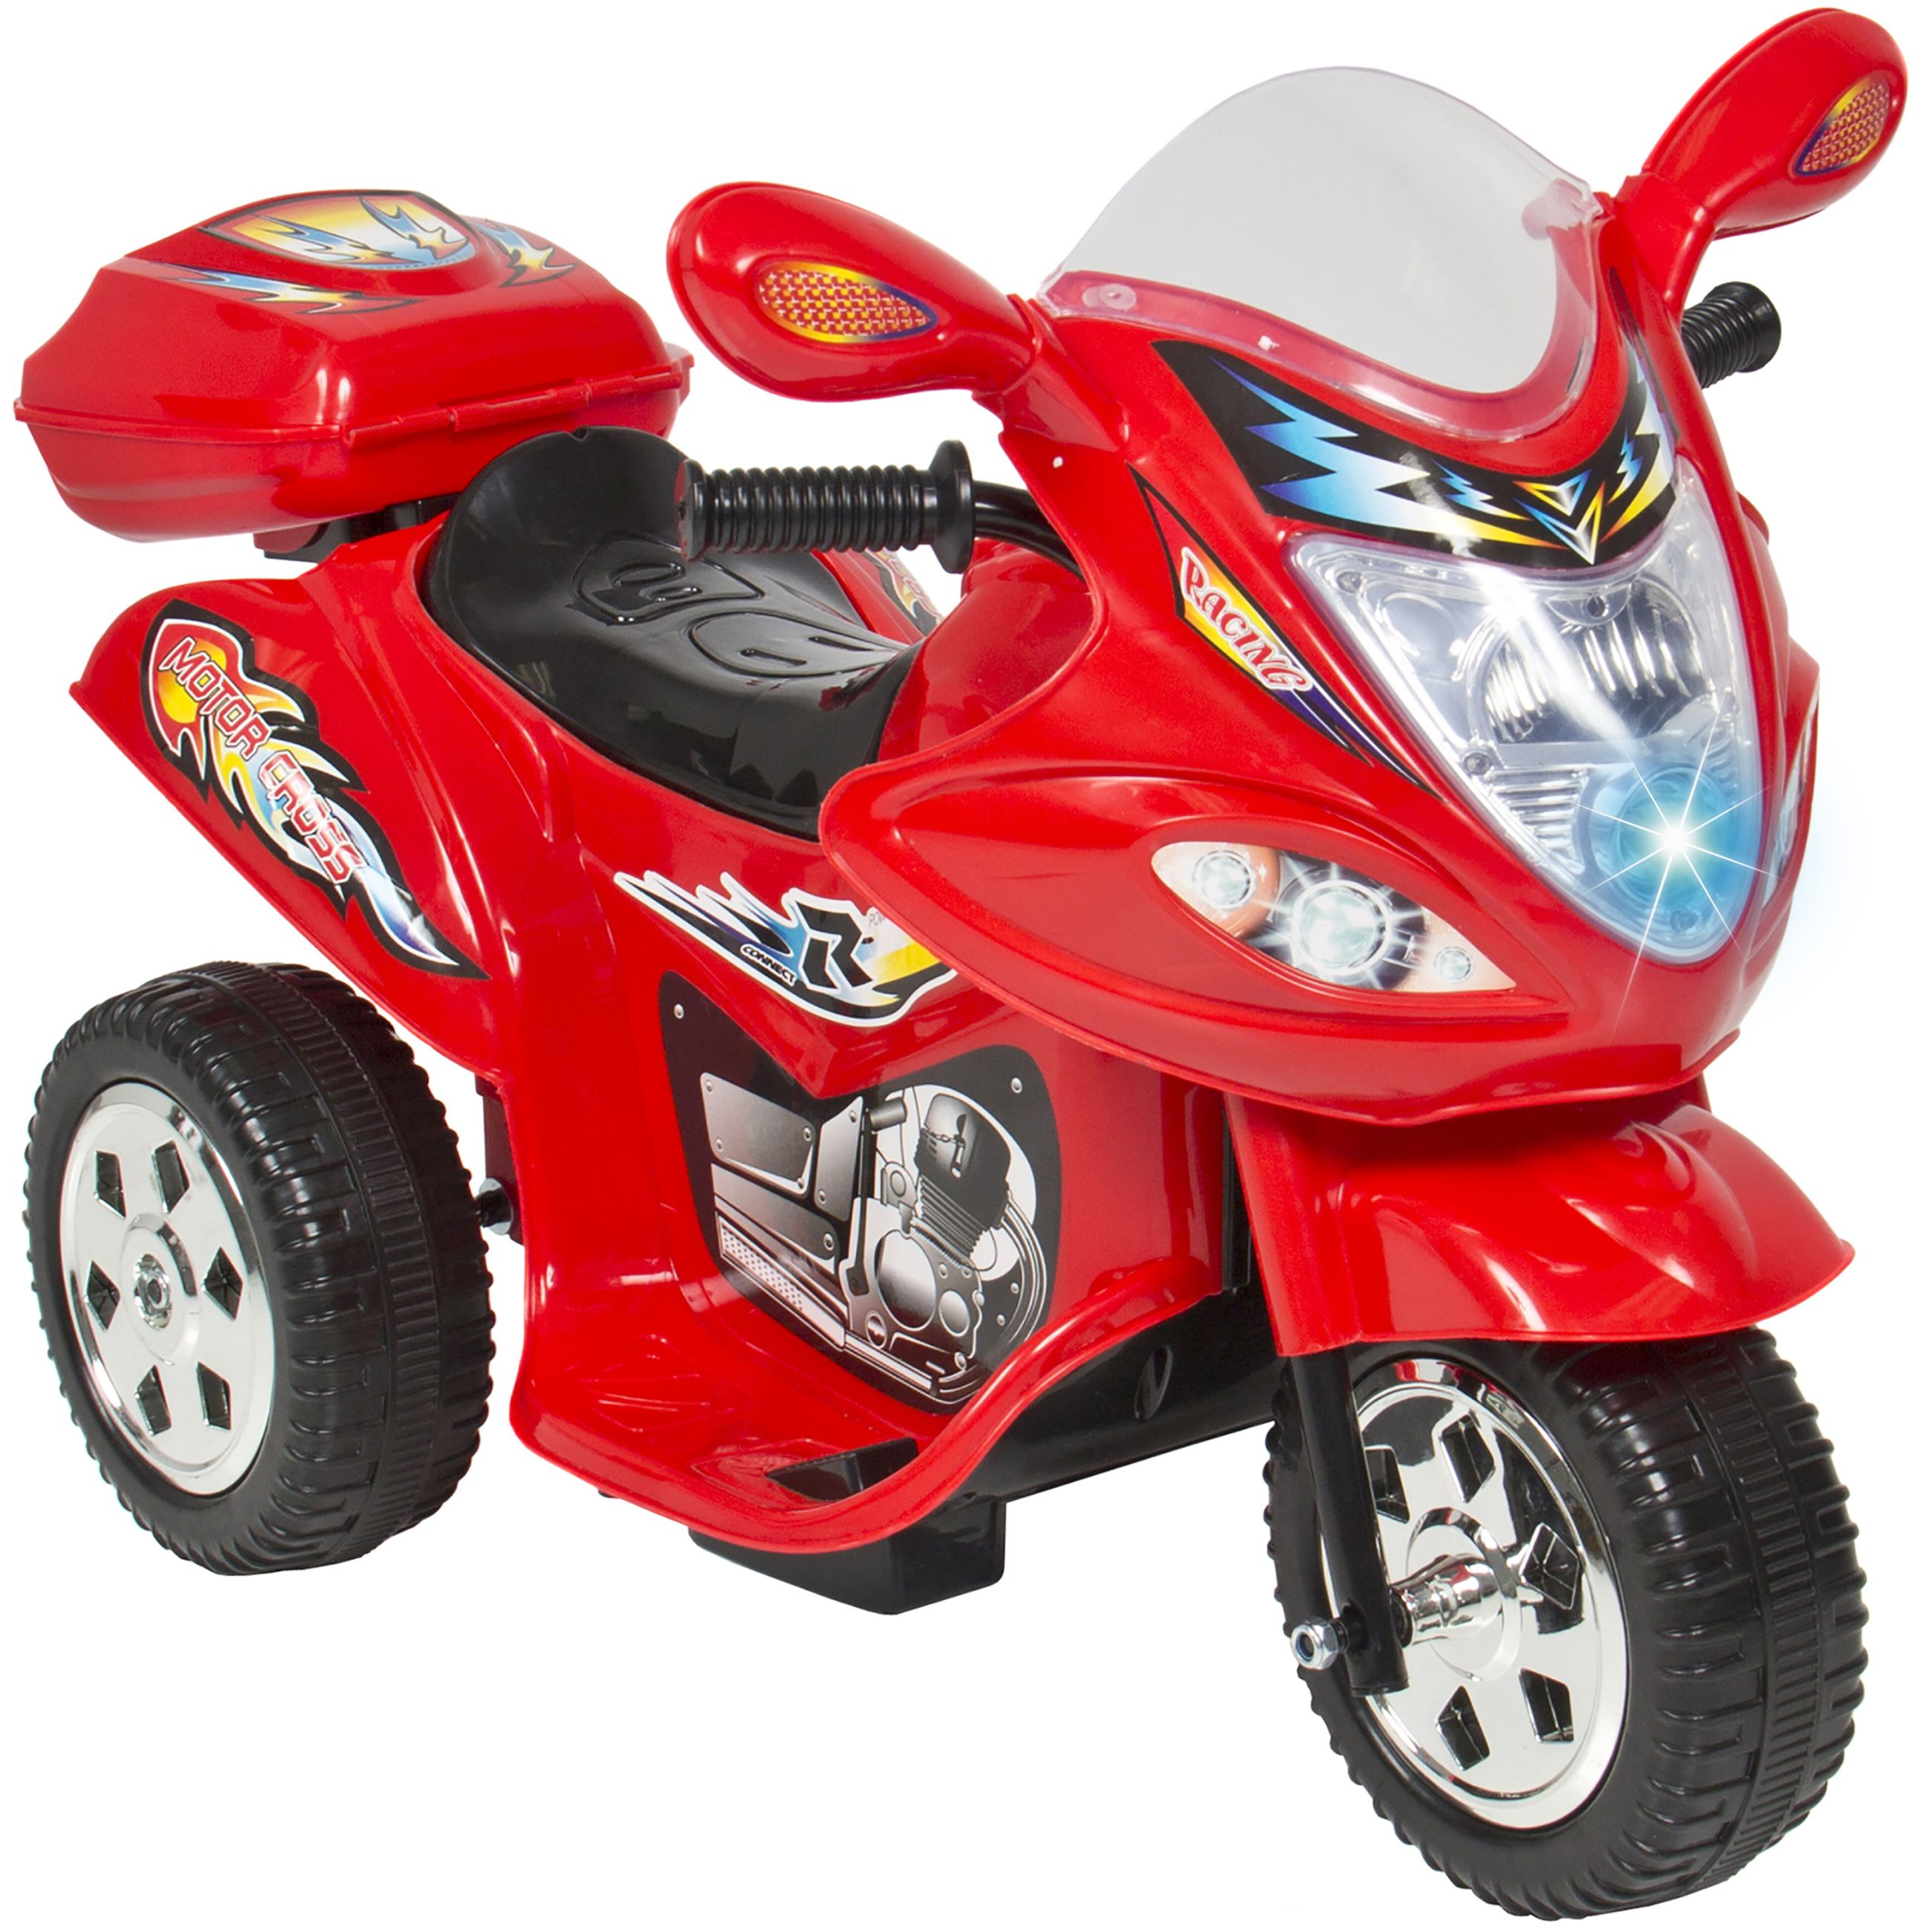 kids ride on motorcycle 6v toy battery powered electric 3 wheel power bicycle red review